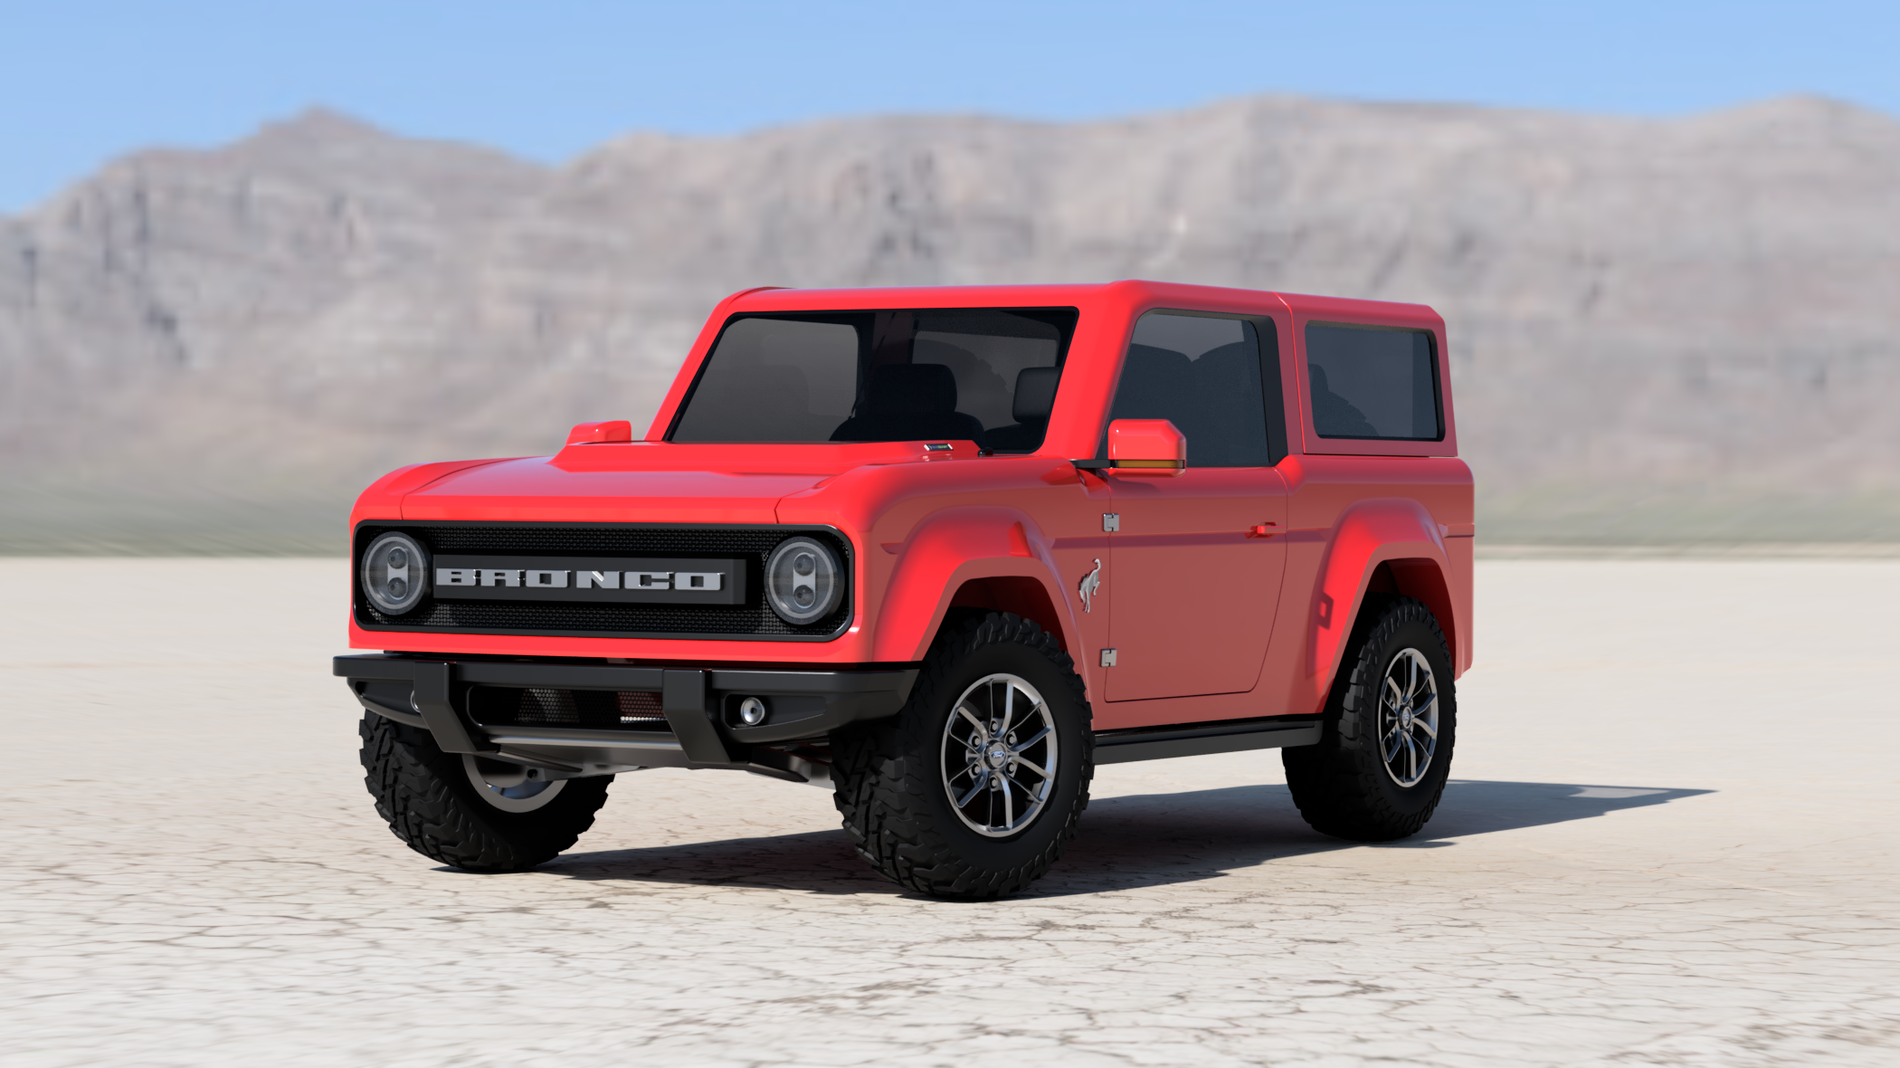 Bronco_Update_v2_2019-Nov-13_08-43-13PM-000_CustomizedView15620142405.png